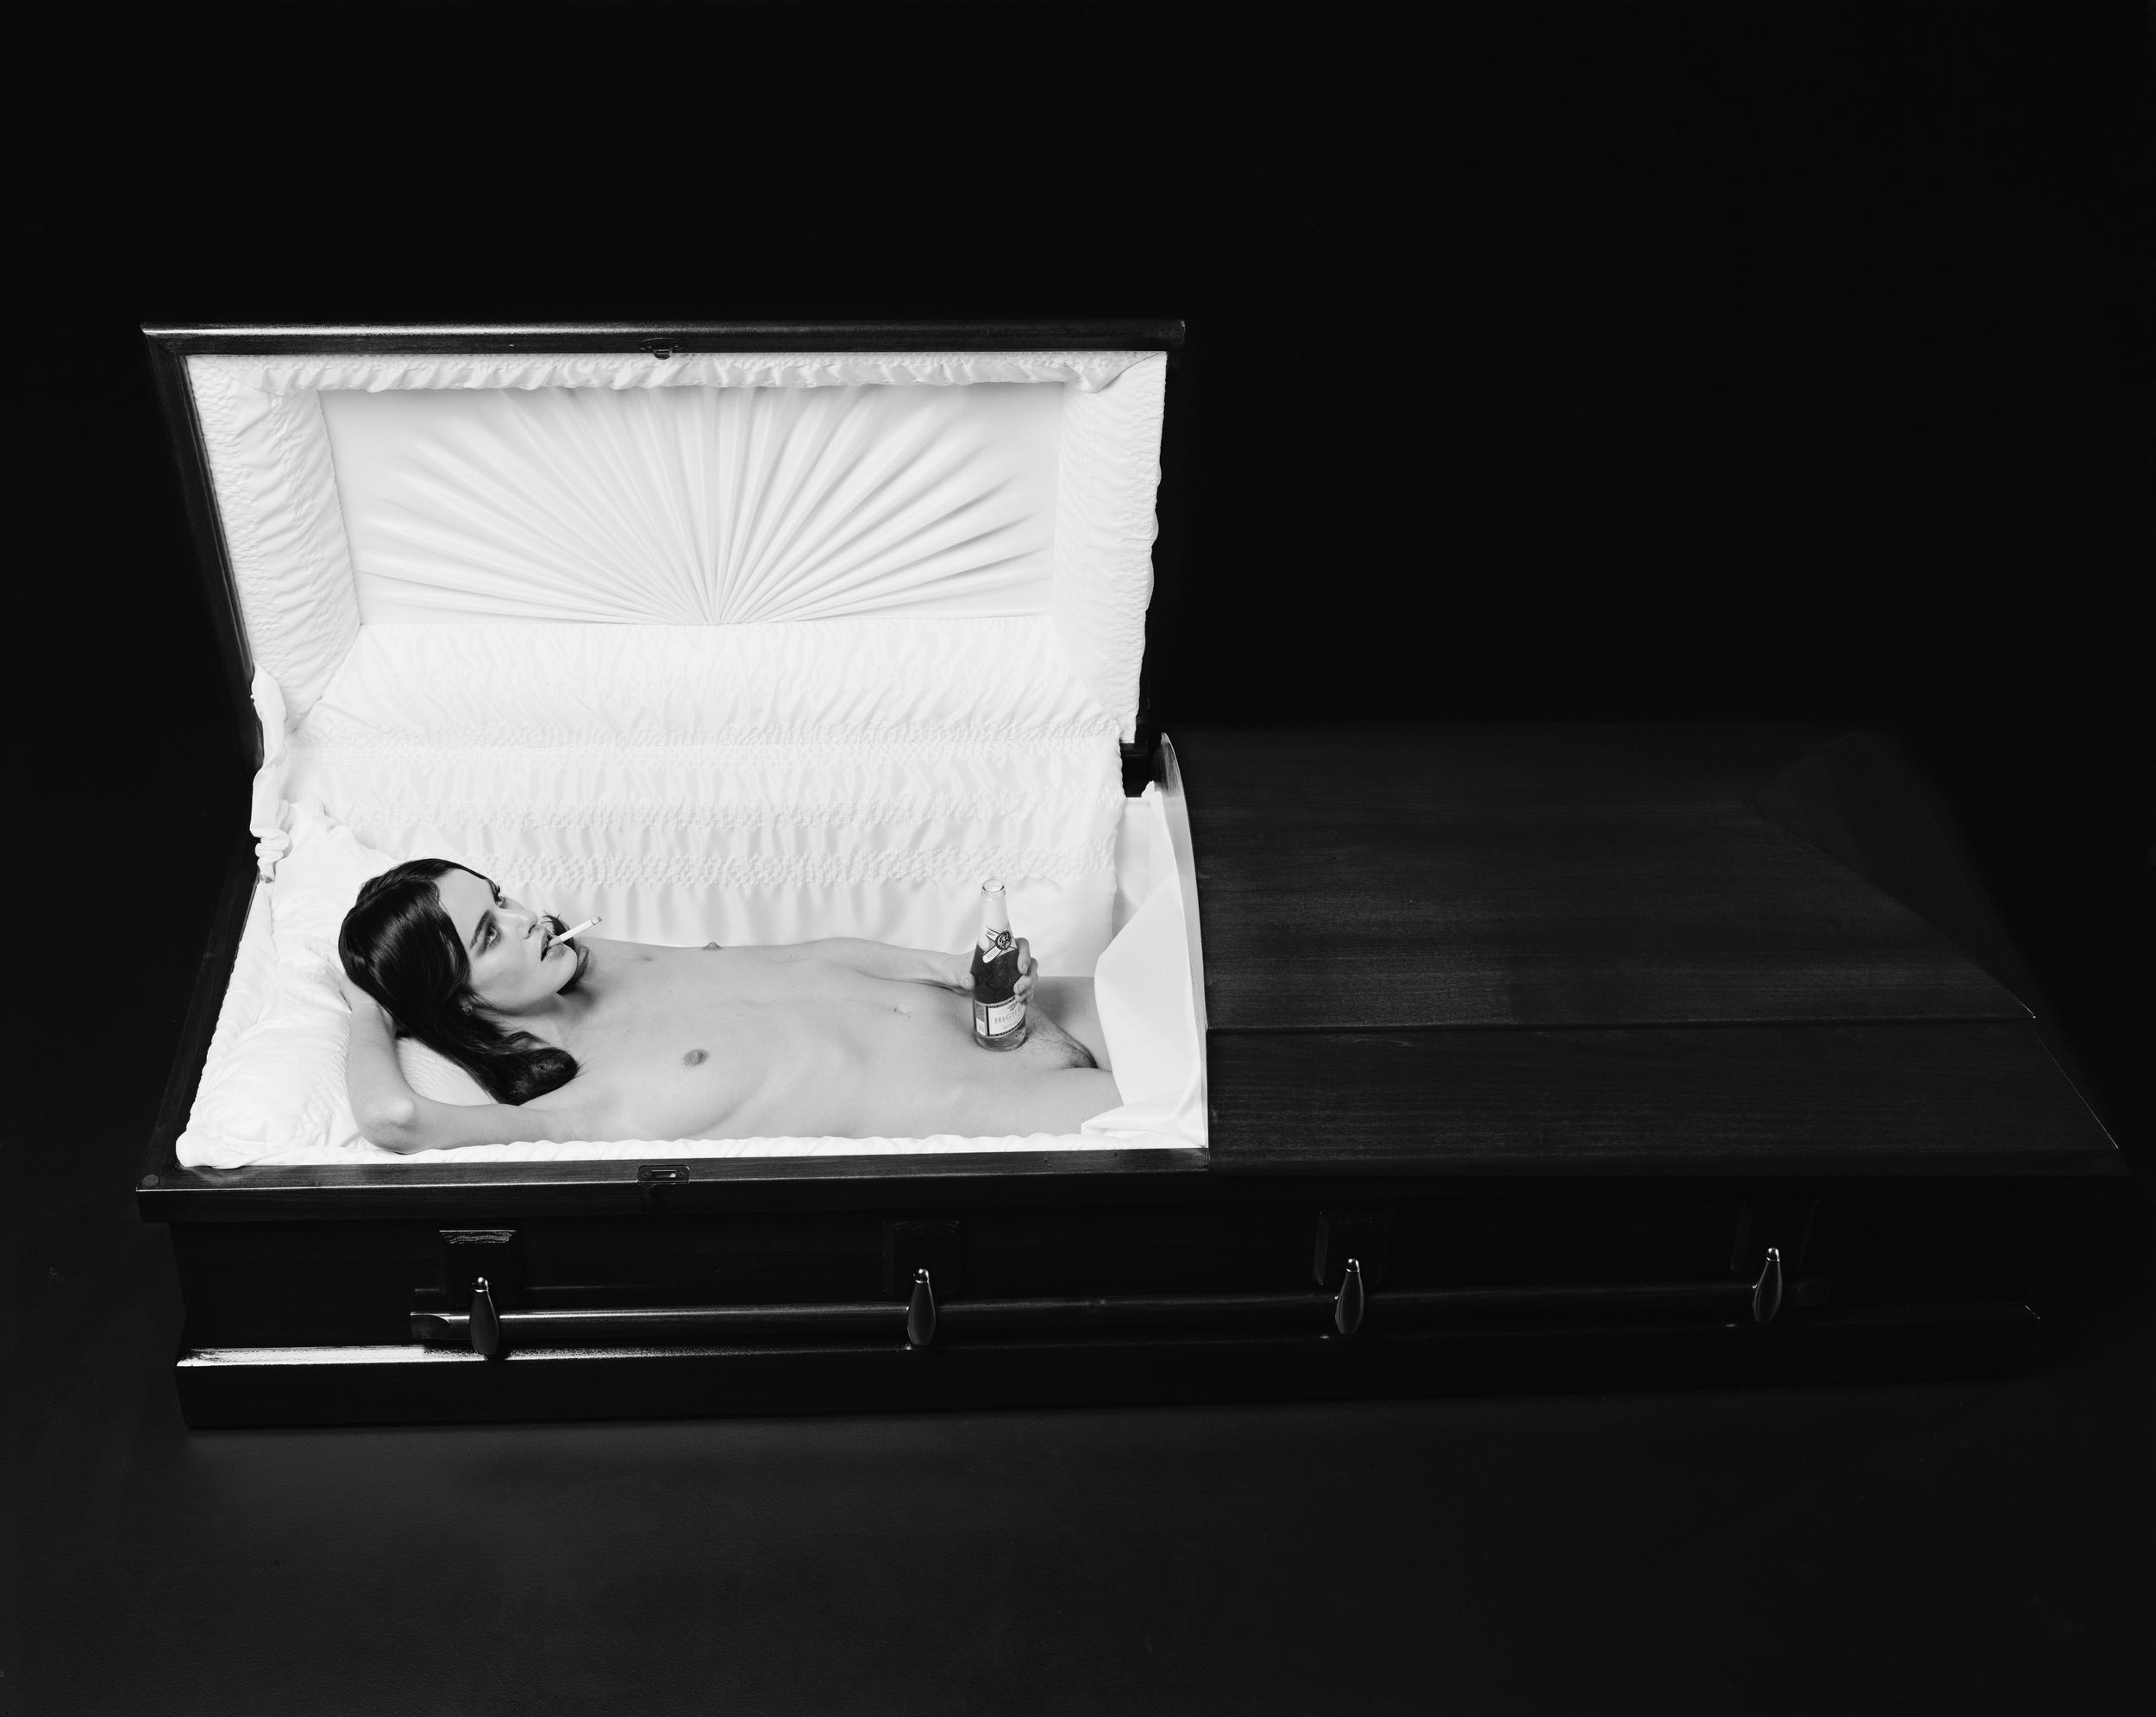 Snow_UNTITLED (COFFIN II), 2010.jpg